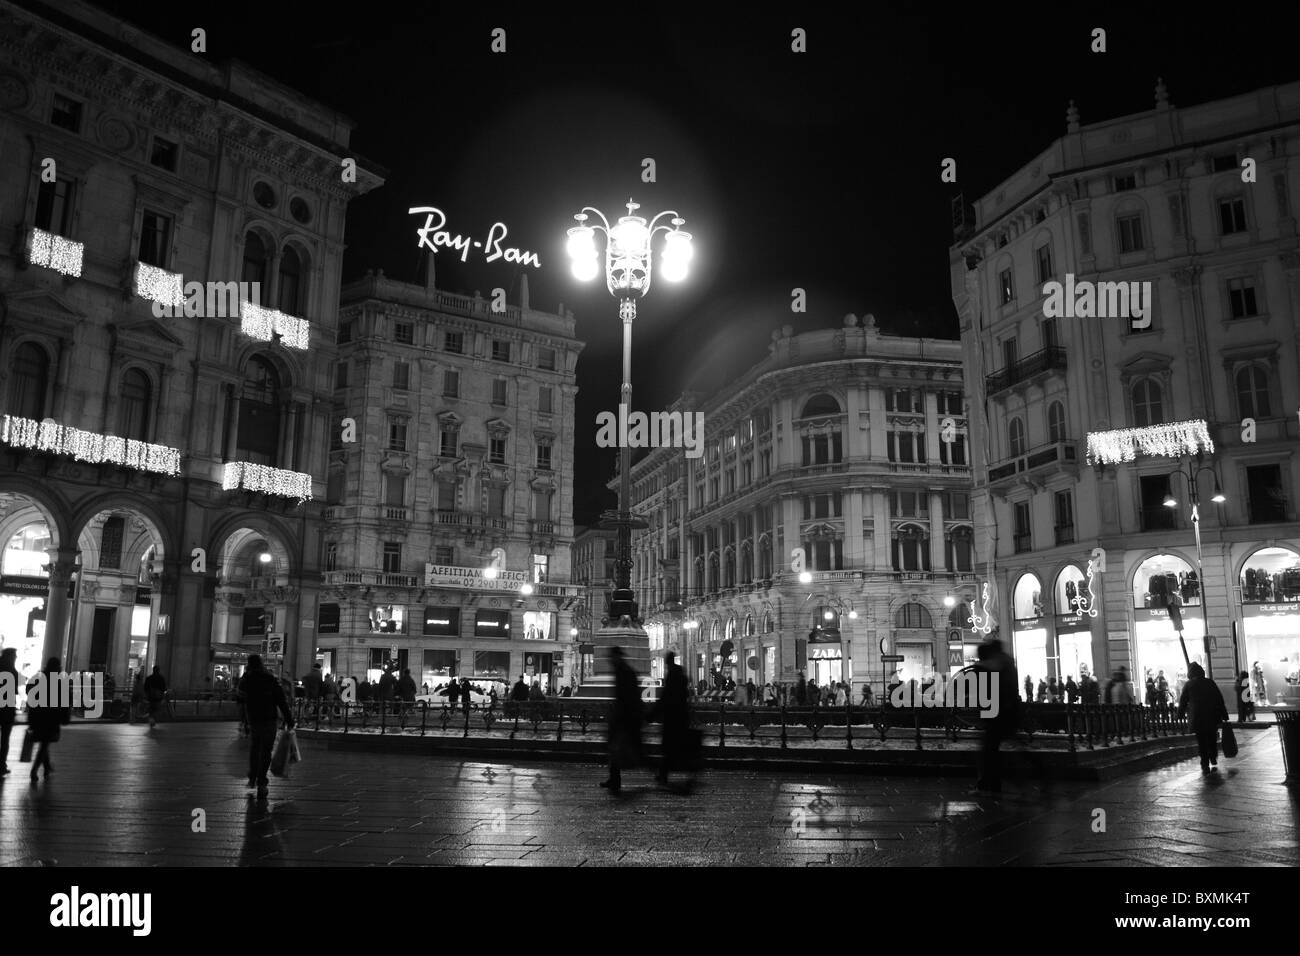 It was mid of December, few days remaining before Christmas, and people where passing by in the Duomo Square with - Stock Image